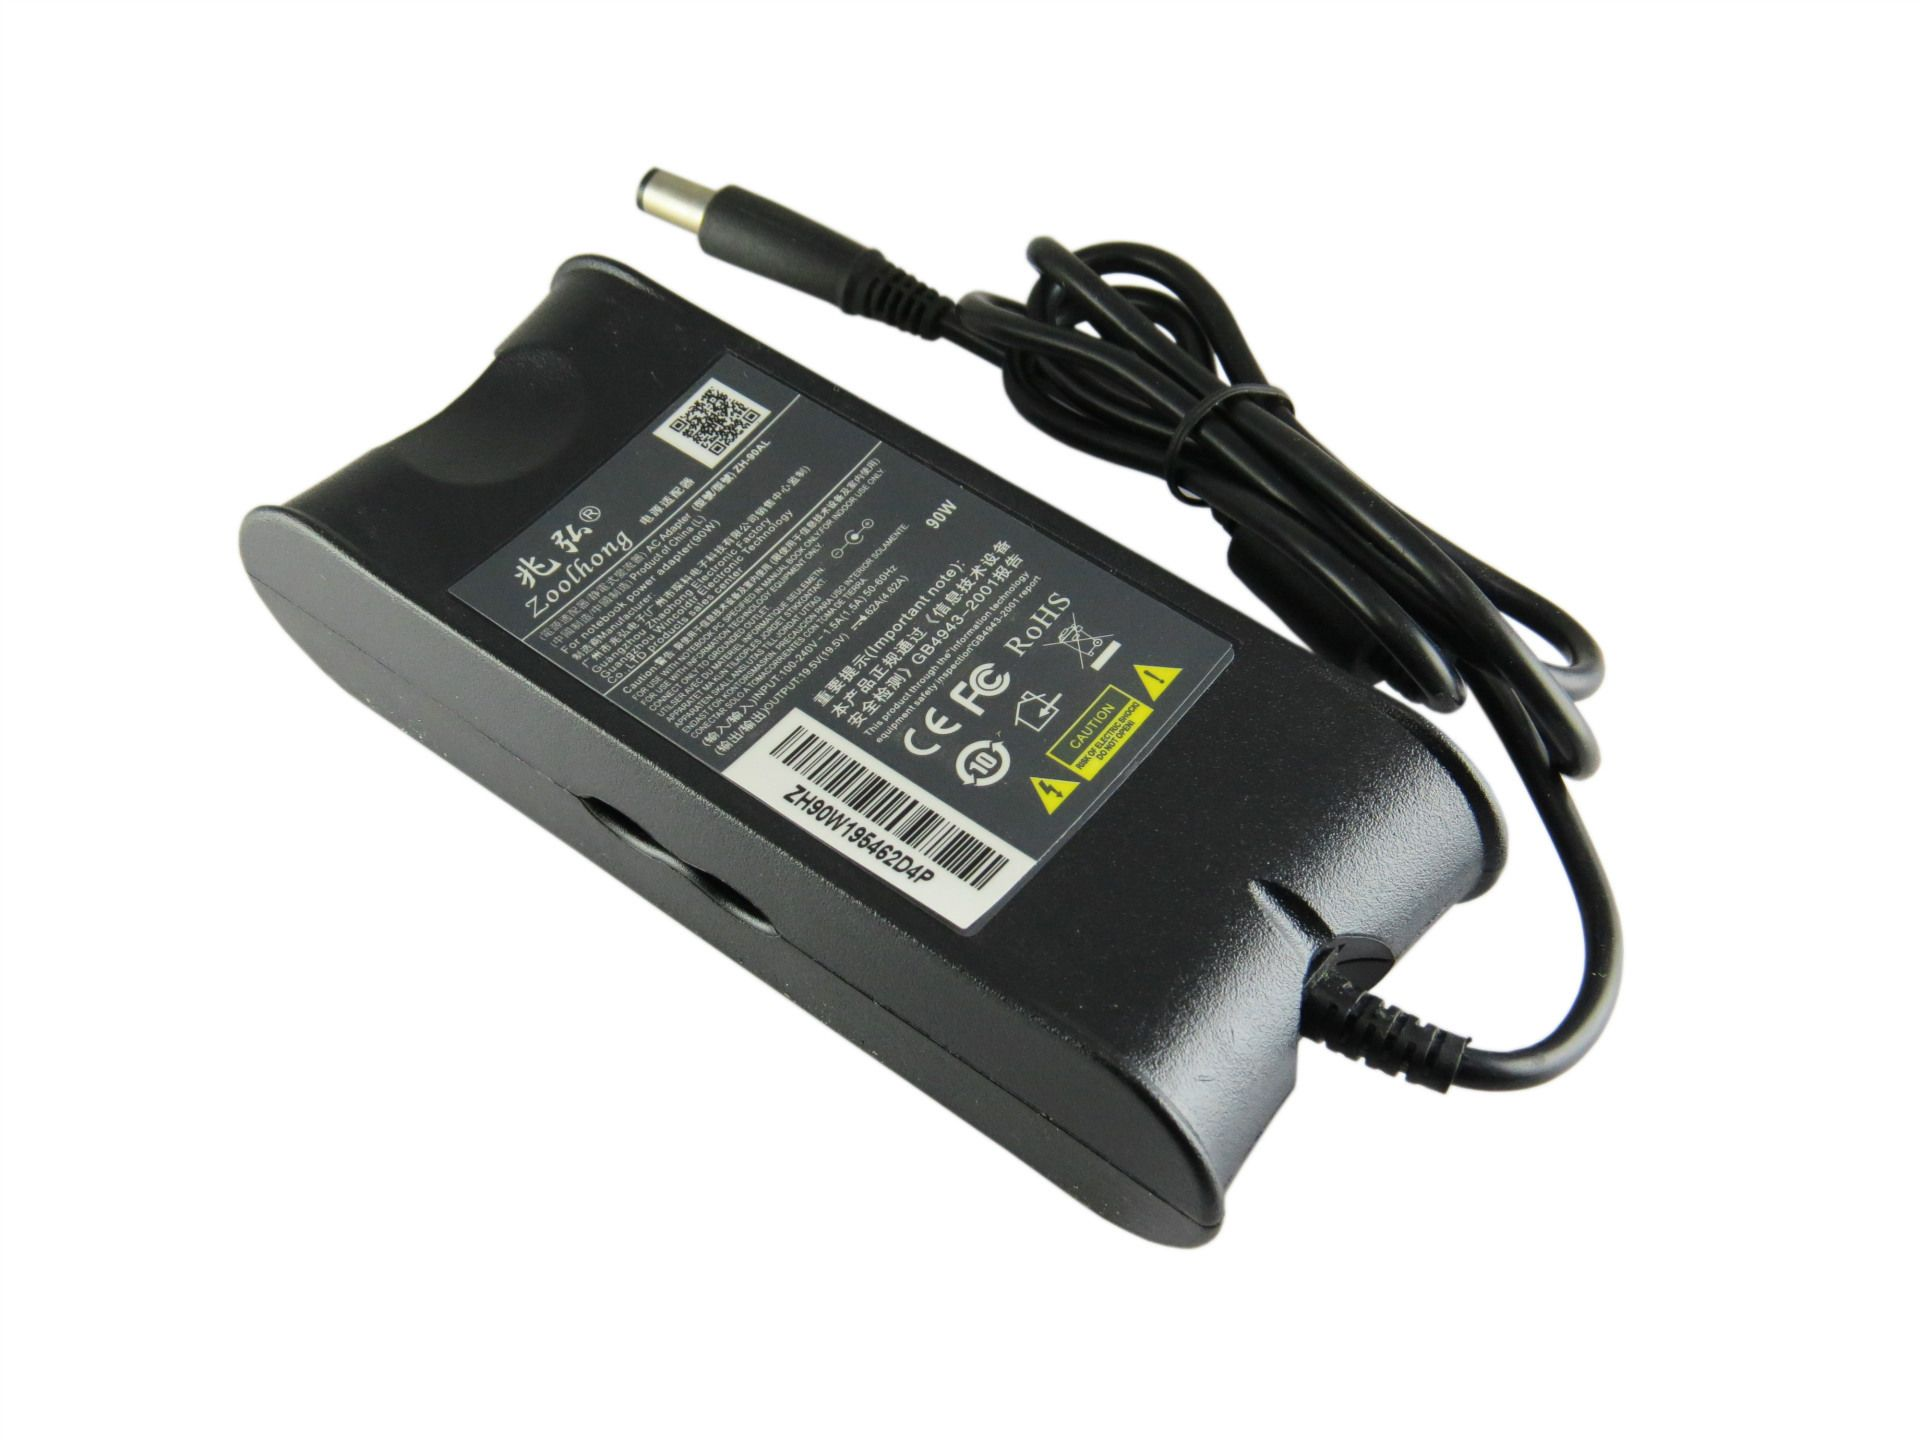 19.5V 4.62A 90W Ac Power Adapter Charger For Dell Laptop Ad-90195D Pa-1900-01D3 Df266 M20 M60 M65 M70 7.4Mm * 5.0Mm